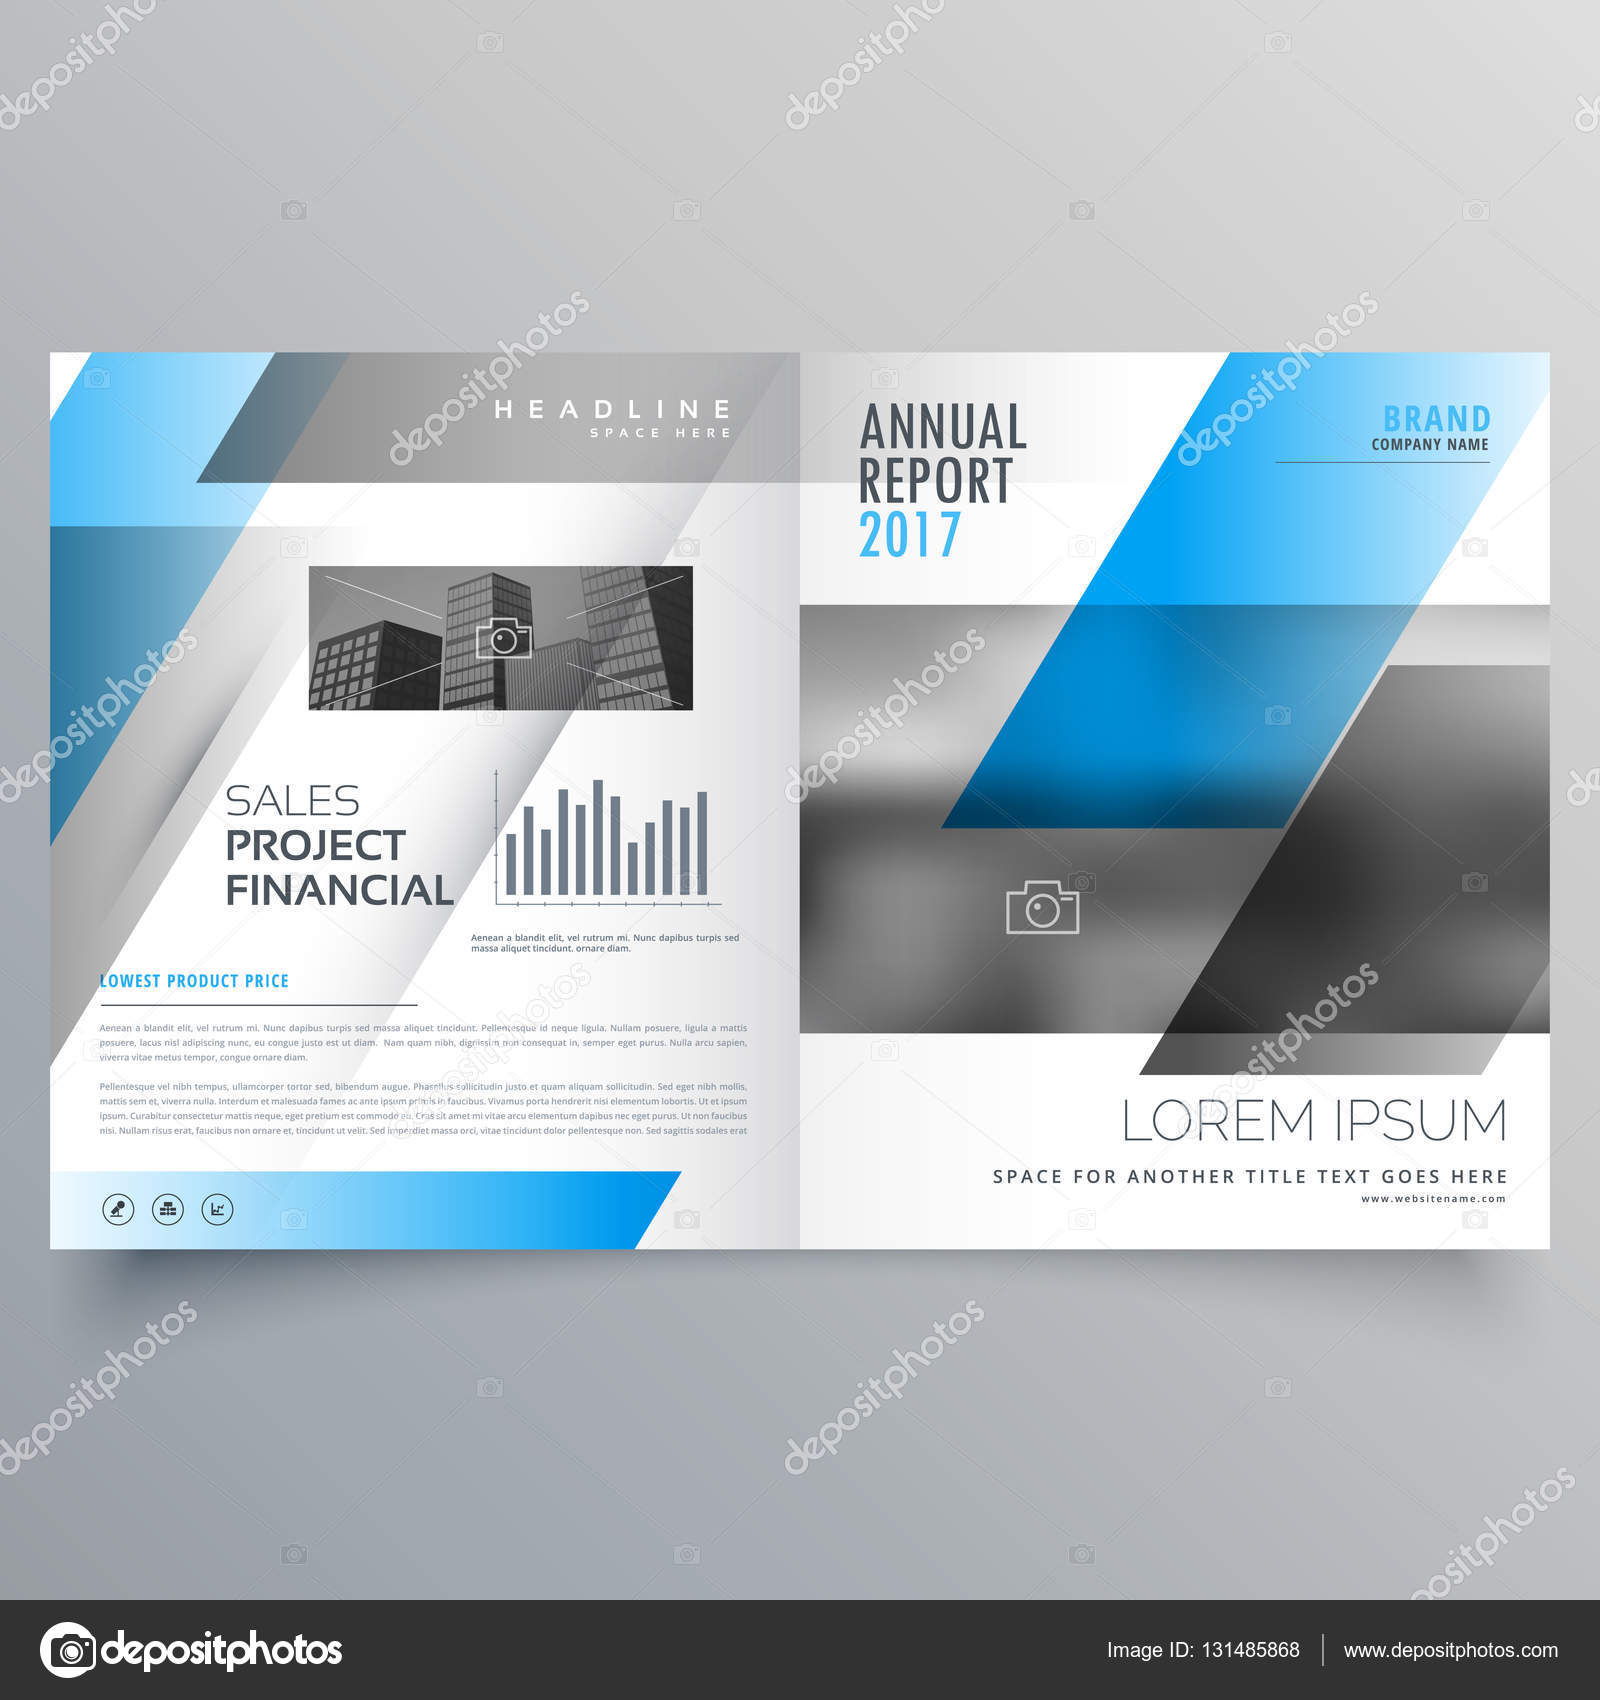 Modern Business Bifold Brochure Template With Blue Black Abstrac - Bifold brochure template